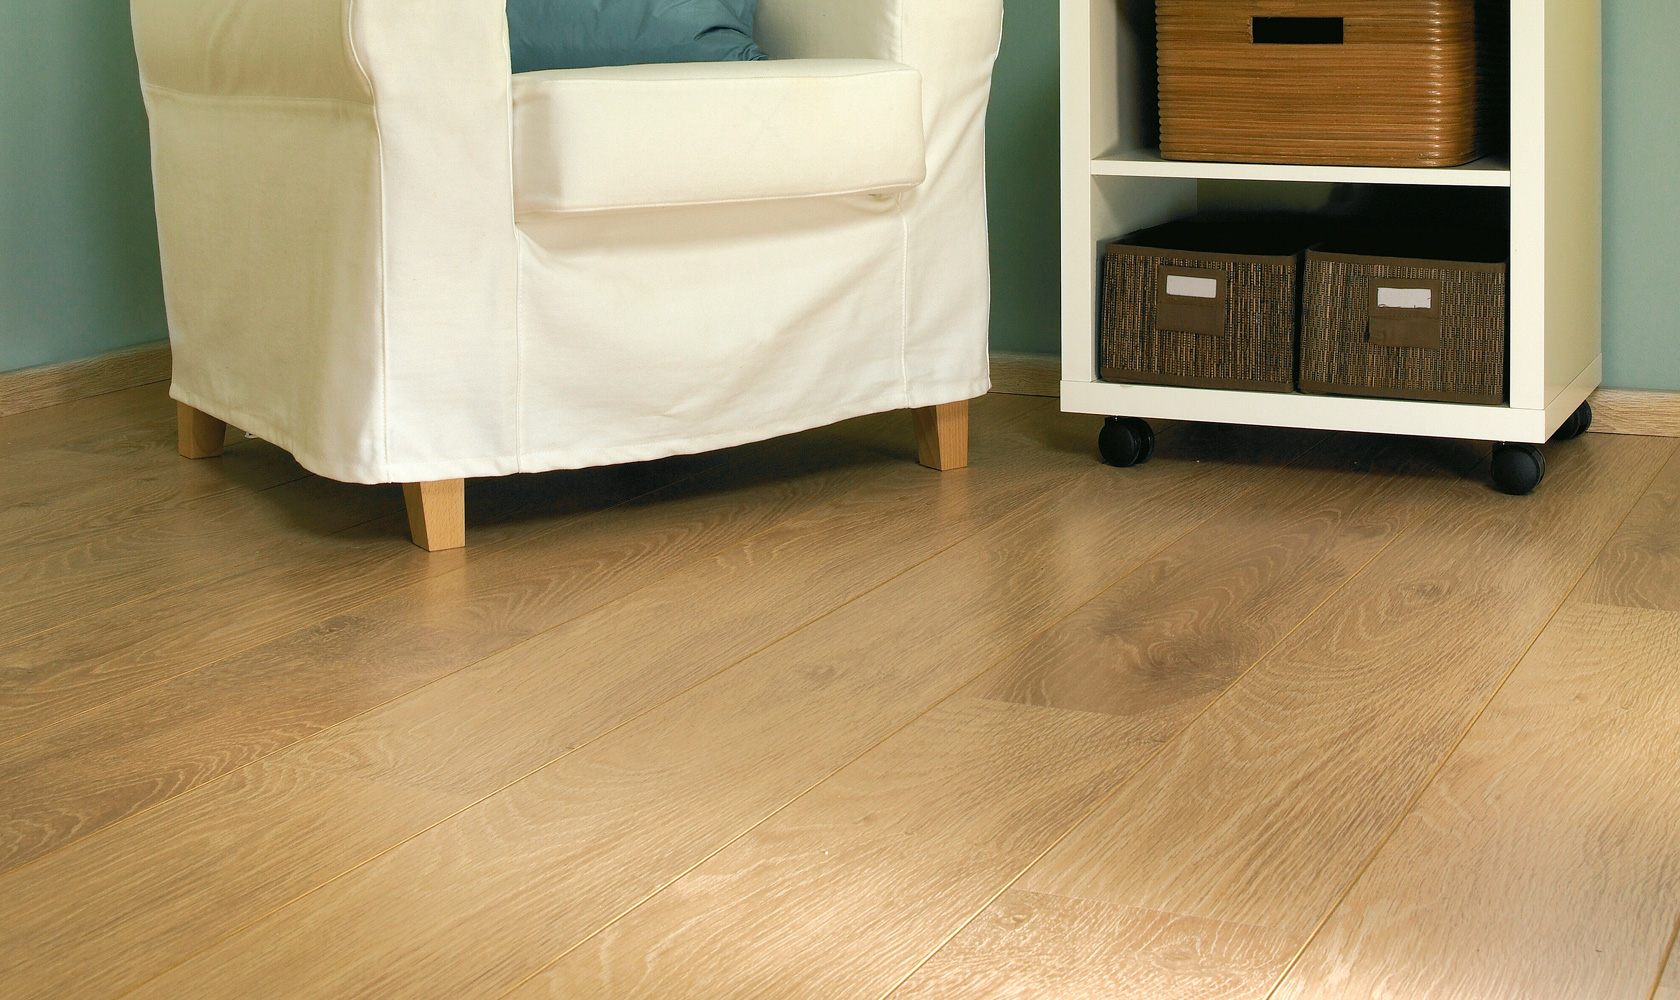 Balterio luxury laminate flooring tradition quattro lounge for Luxury laminate